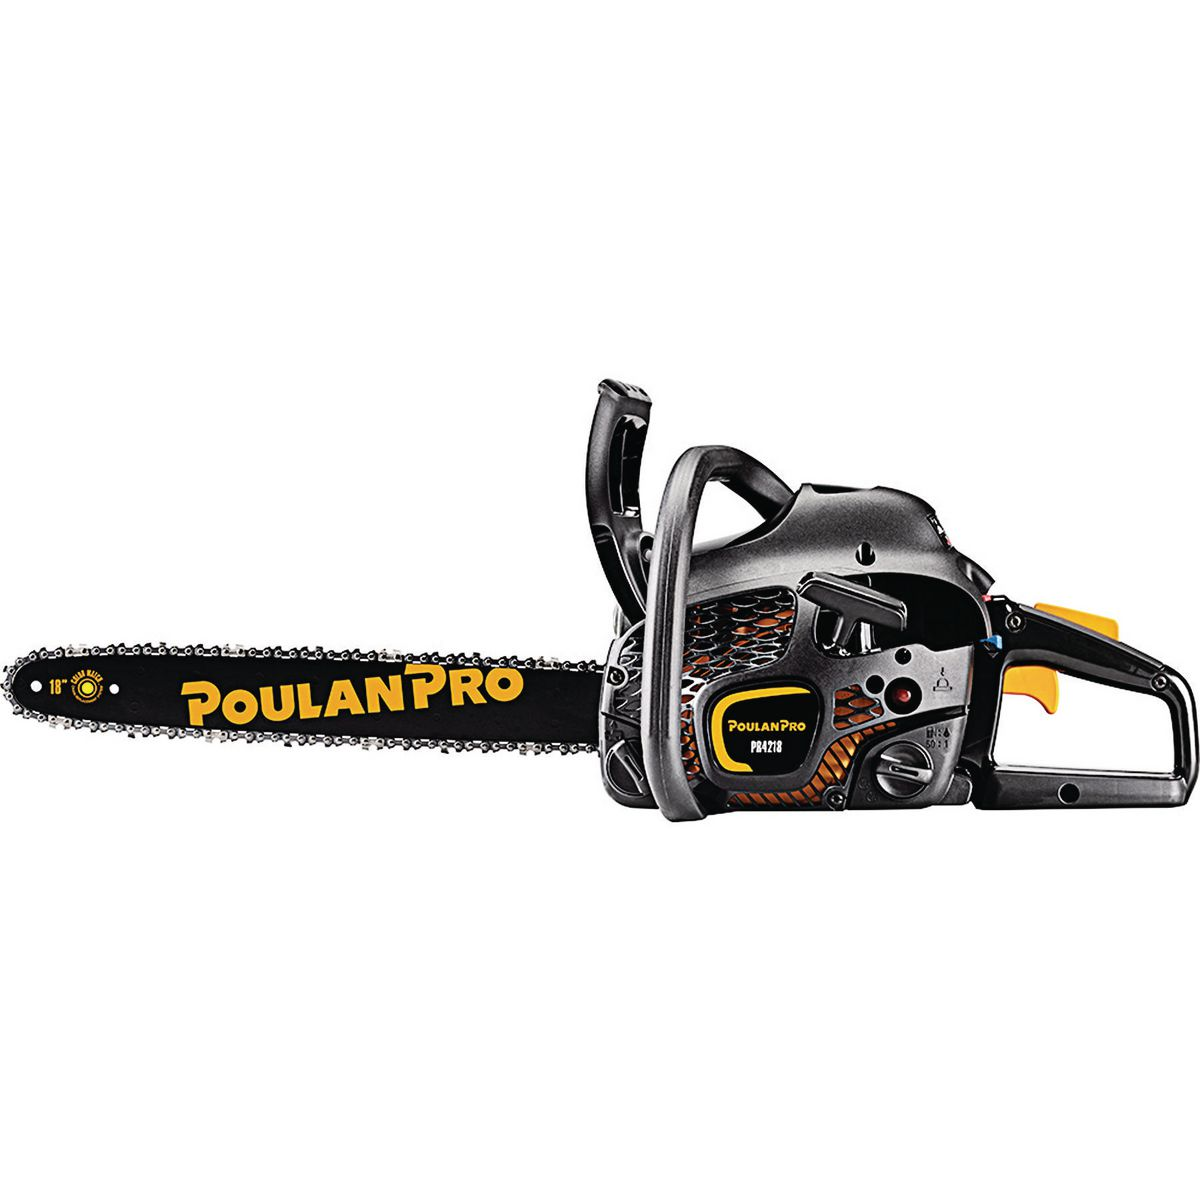 POULAN PRO 42cc 18 In. Gas Chainsaw - Item 64097